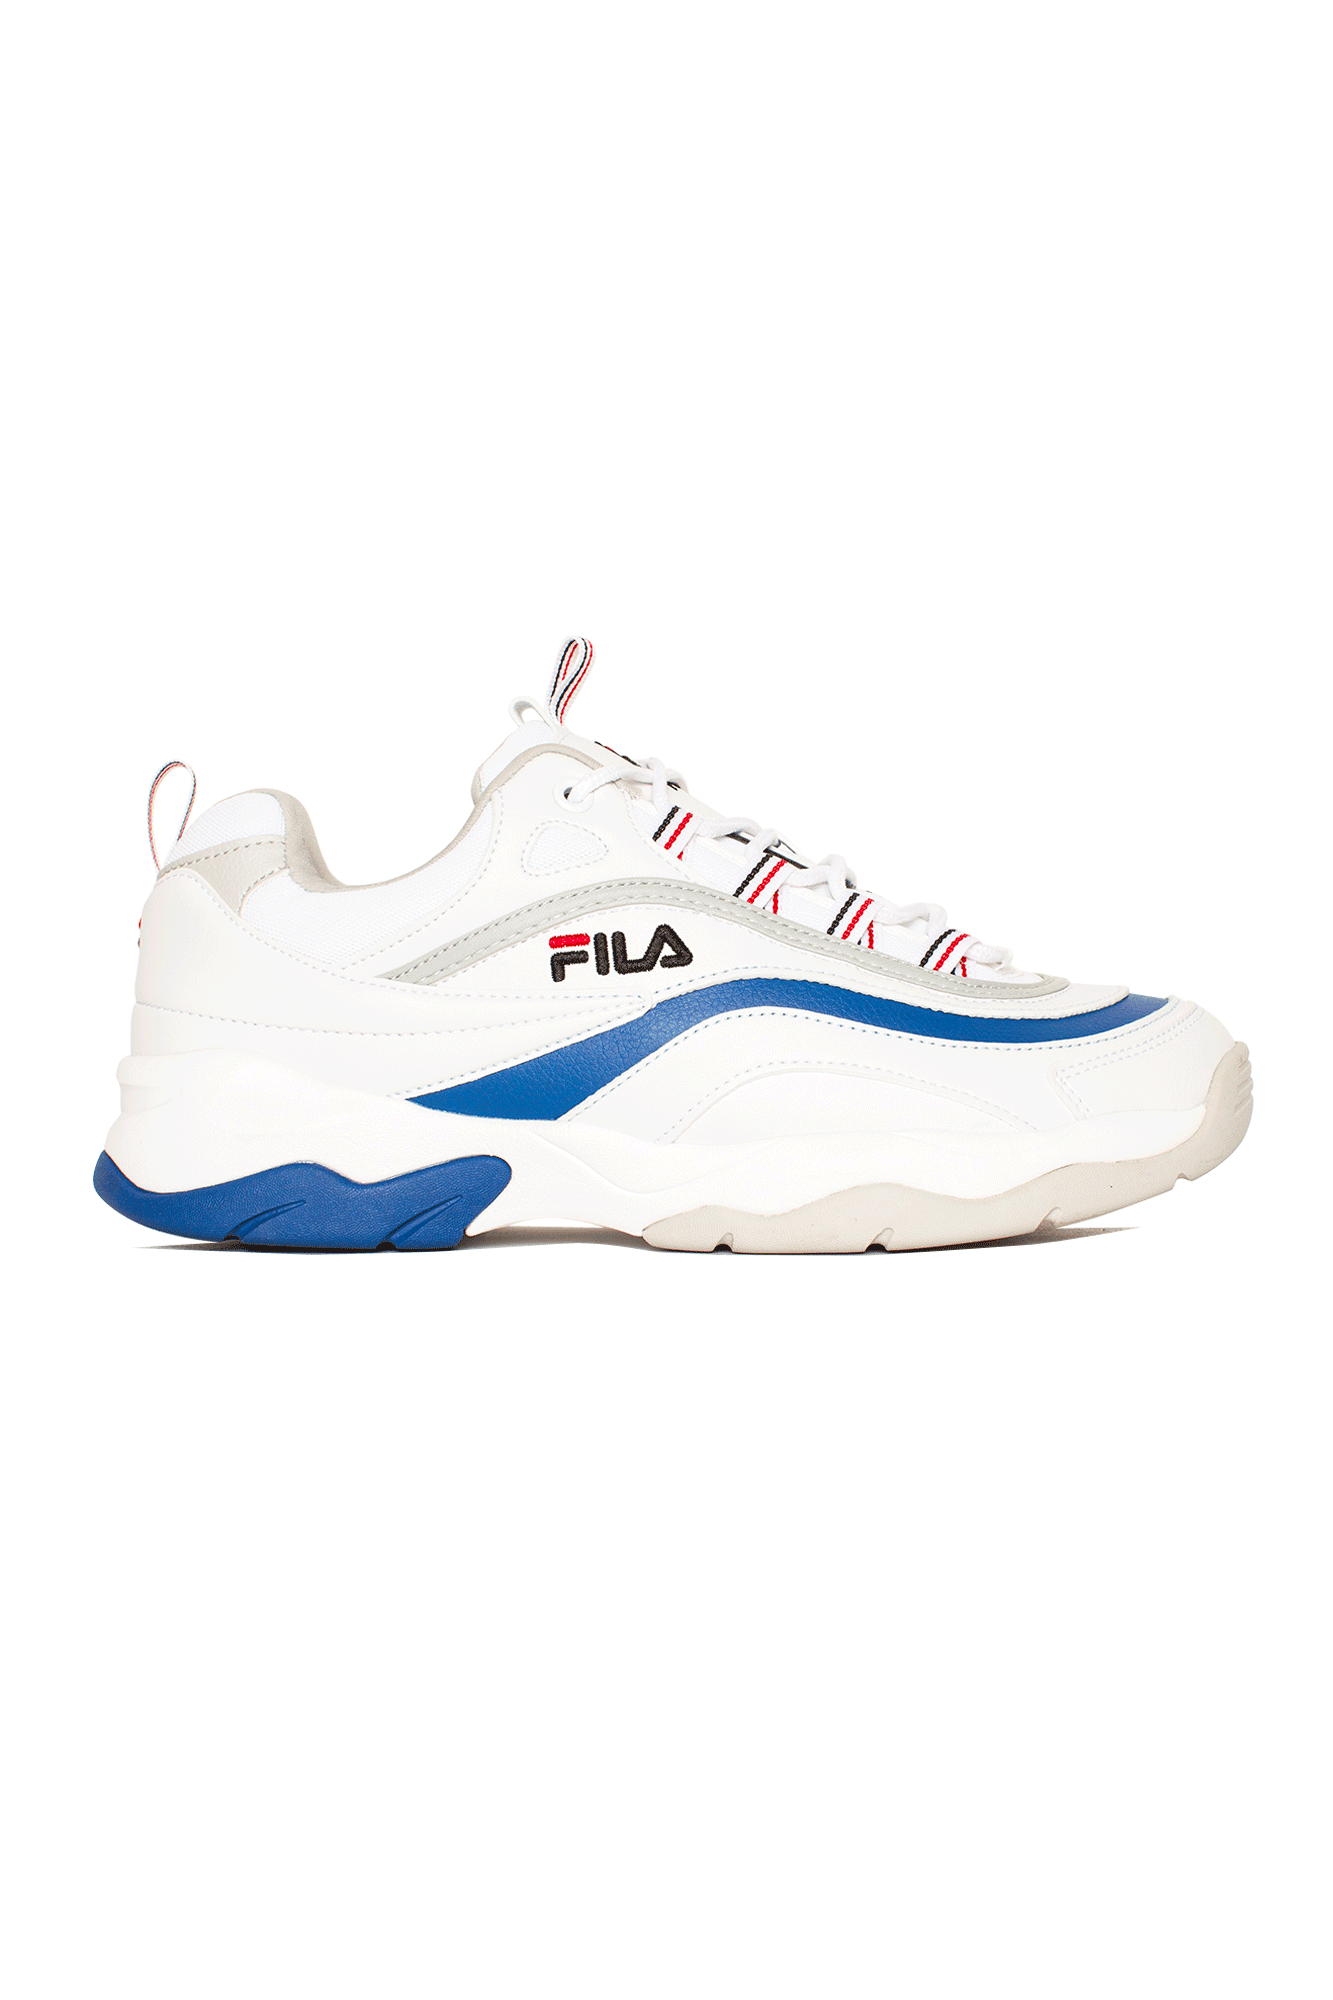 Sneakers Fila Ray F Low White - One Block Down